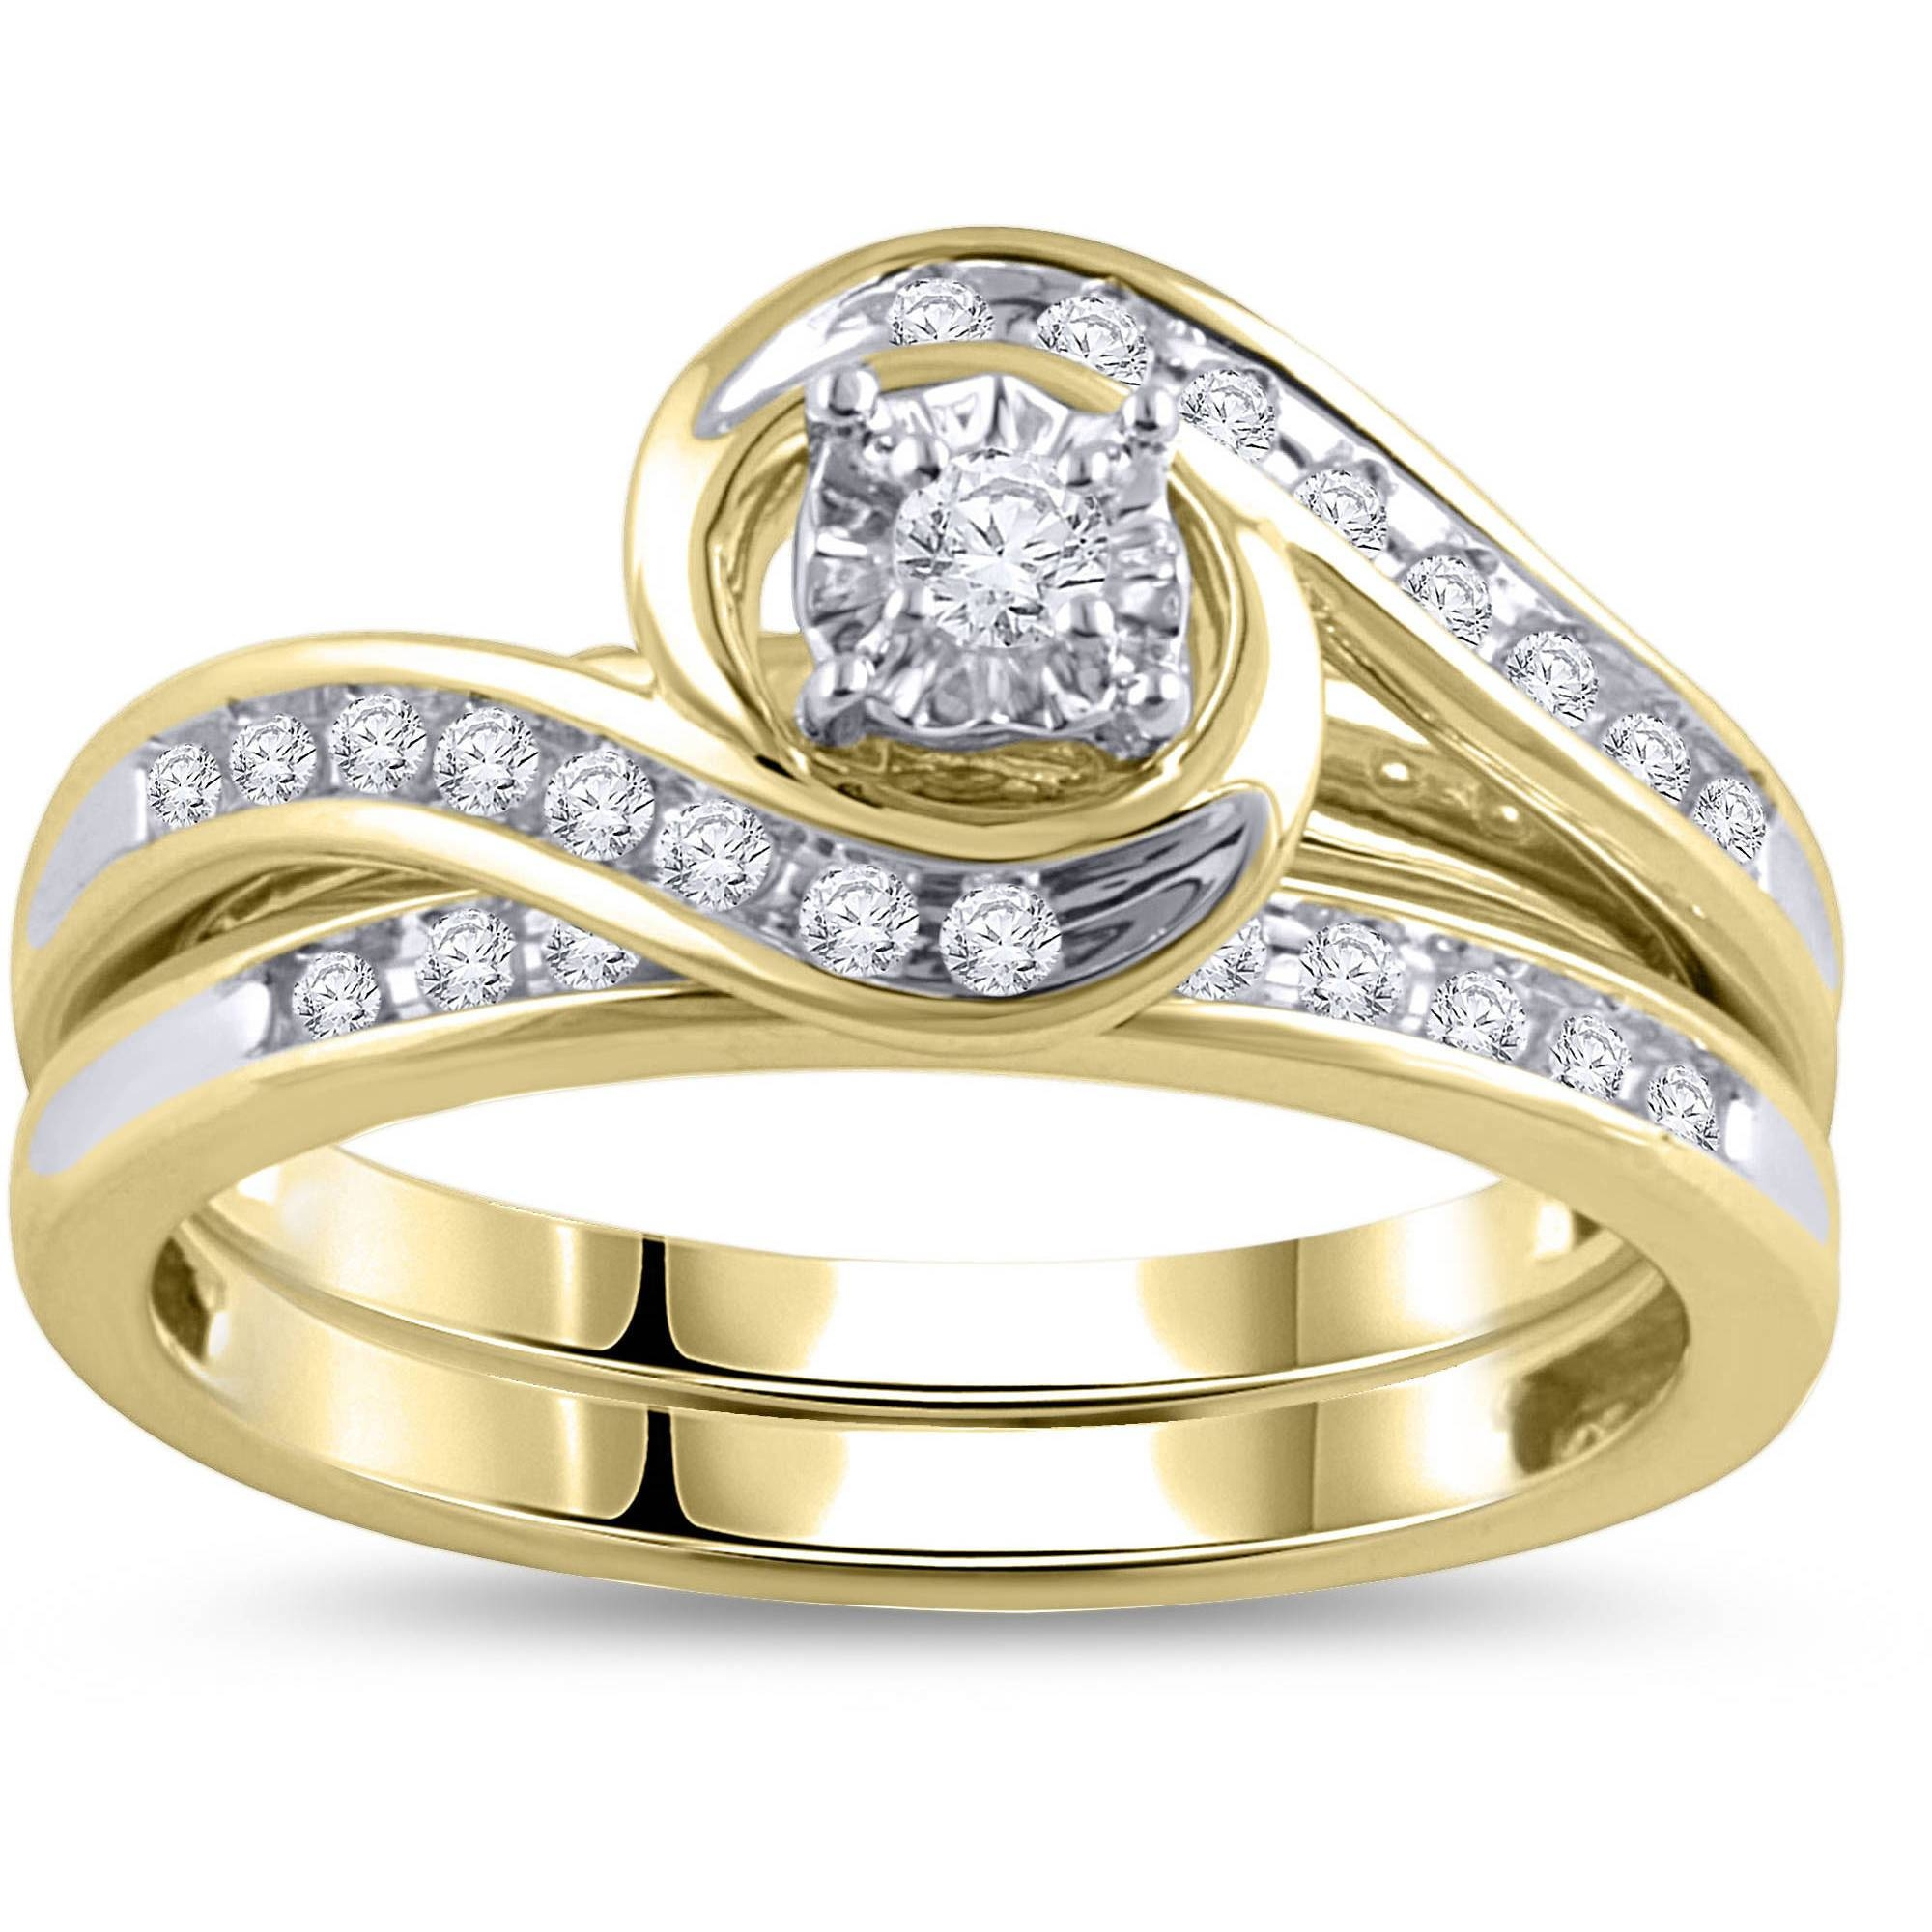 1/3 Carat Diamond Yellow Gold Bypass Bridal Ring Set – Walmart Within Wedding And Engagement Ring Sets (View 1 of 15)